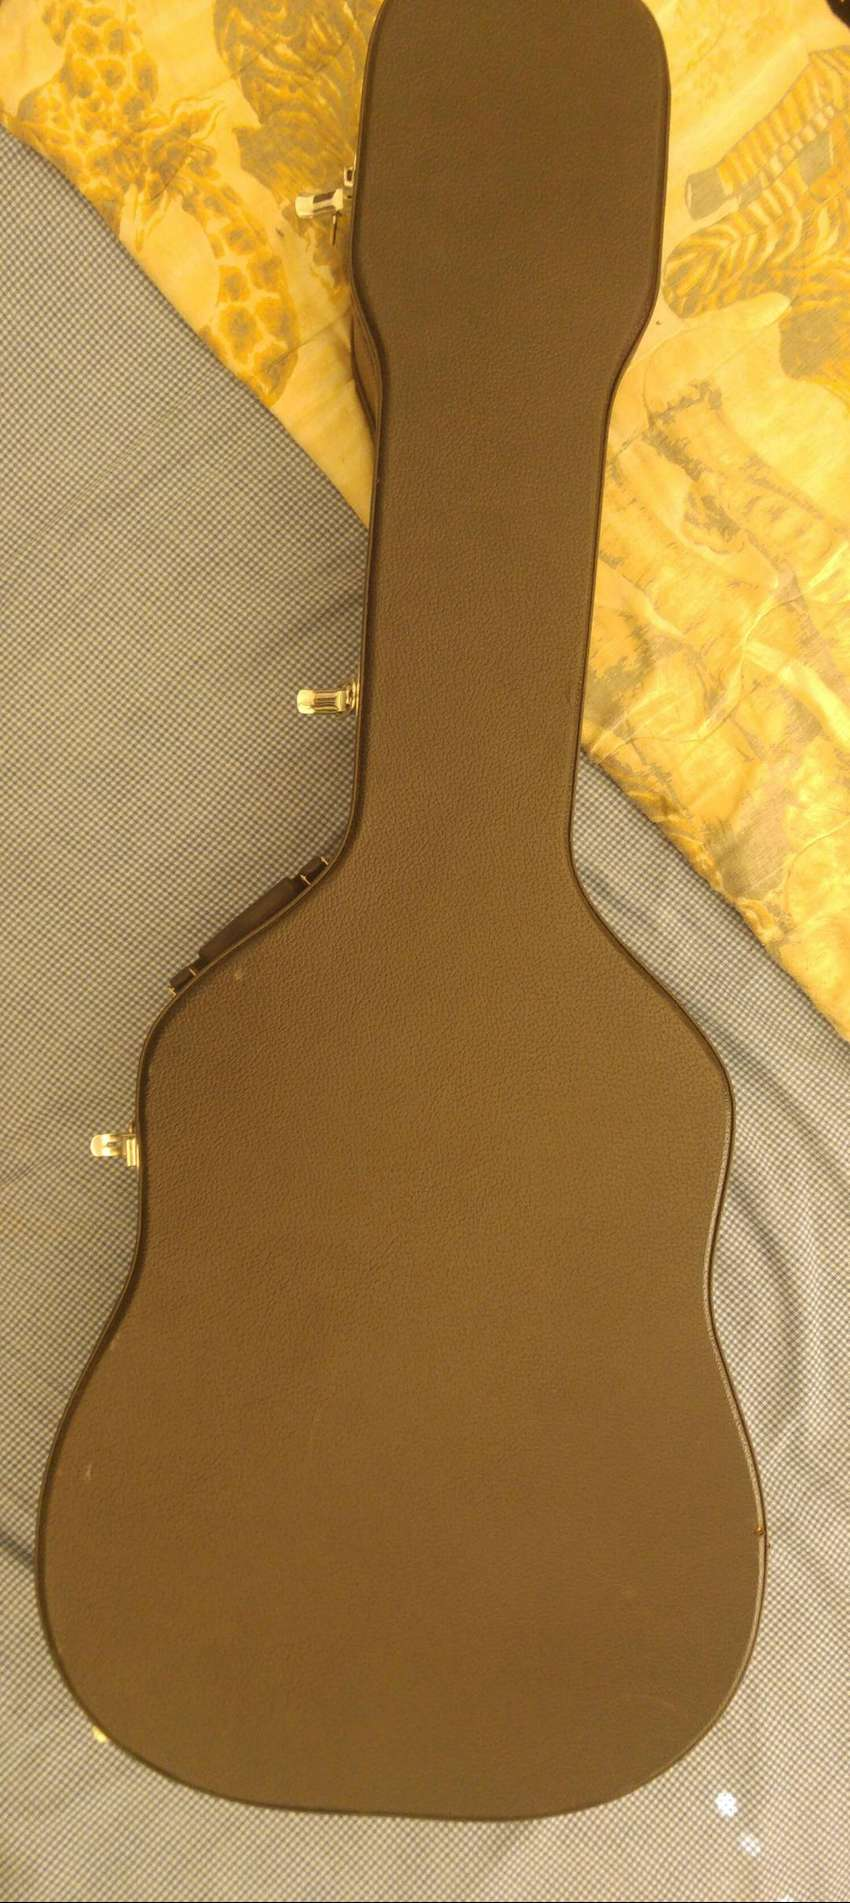 Stagg Acoustic Guitar case for sale 0